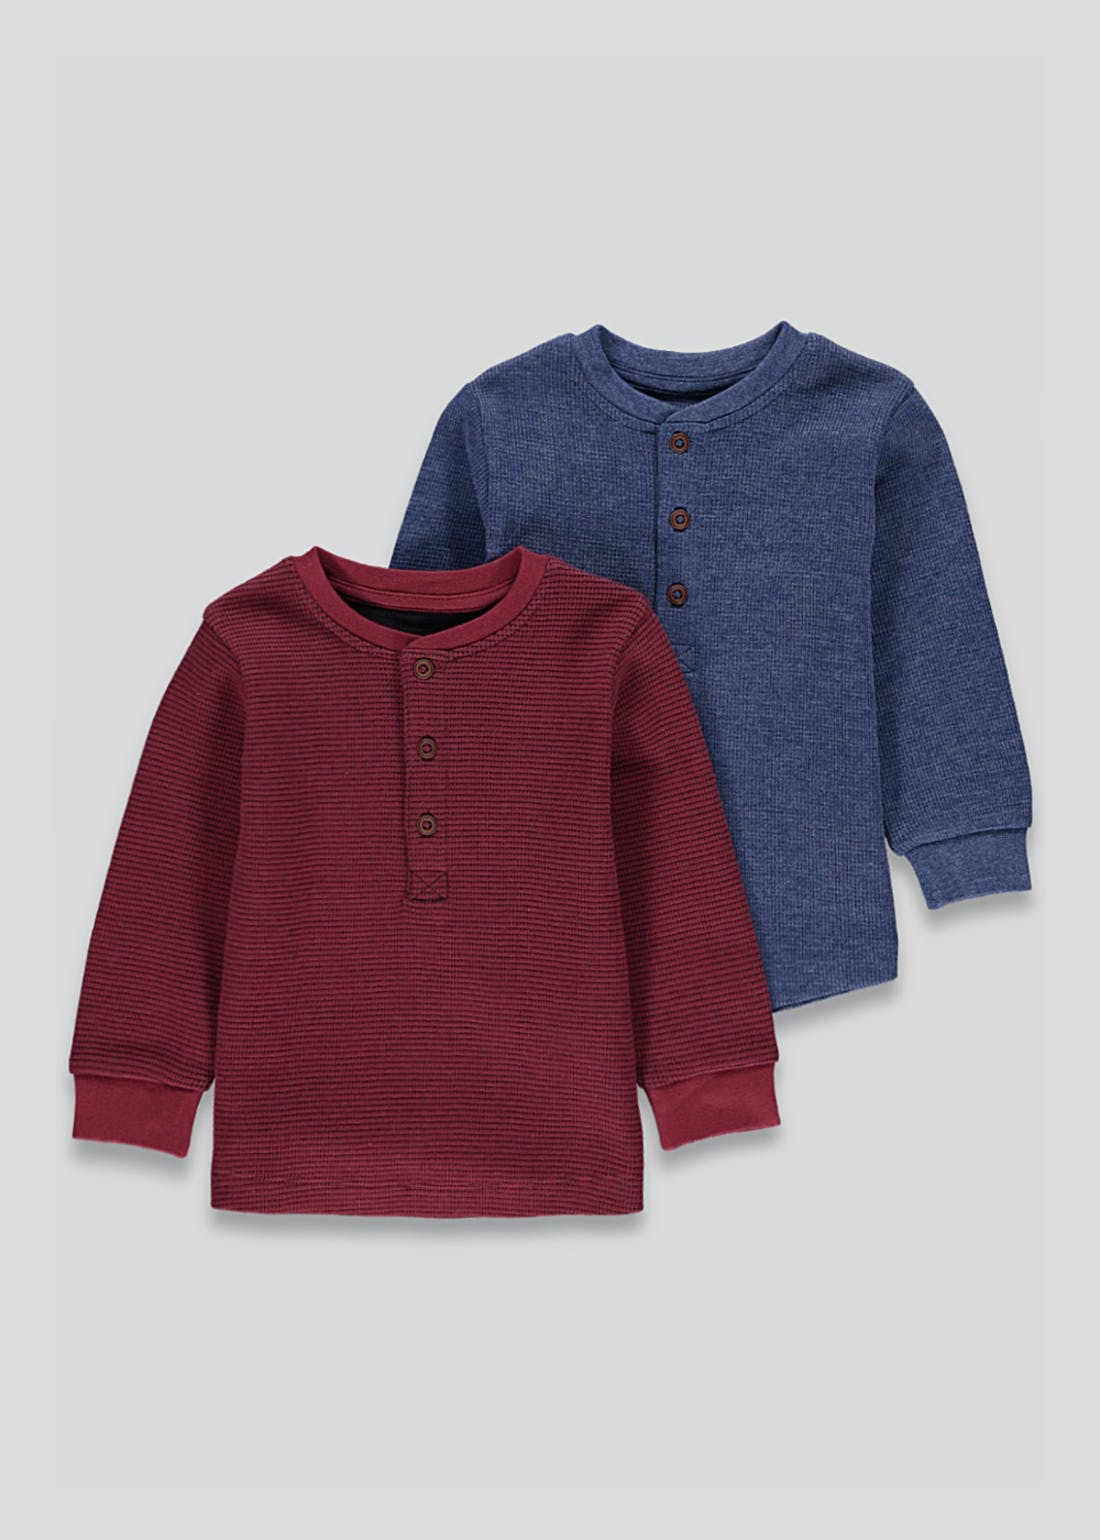 Boys 2 Pack Long Sleeve T-Shirts (9mths-6yrs)